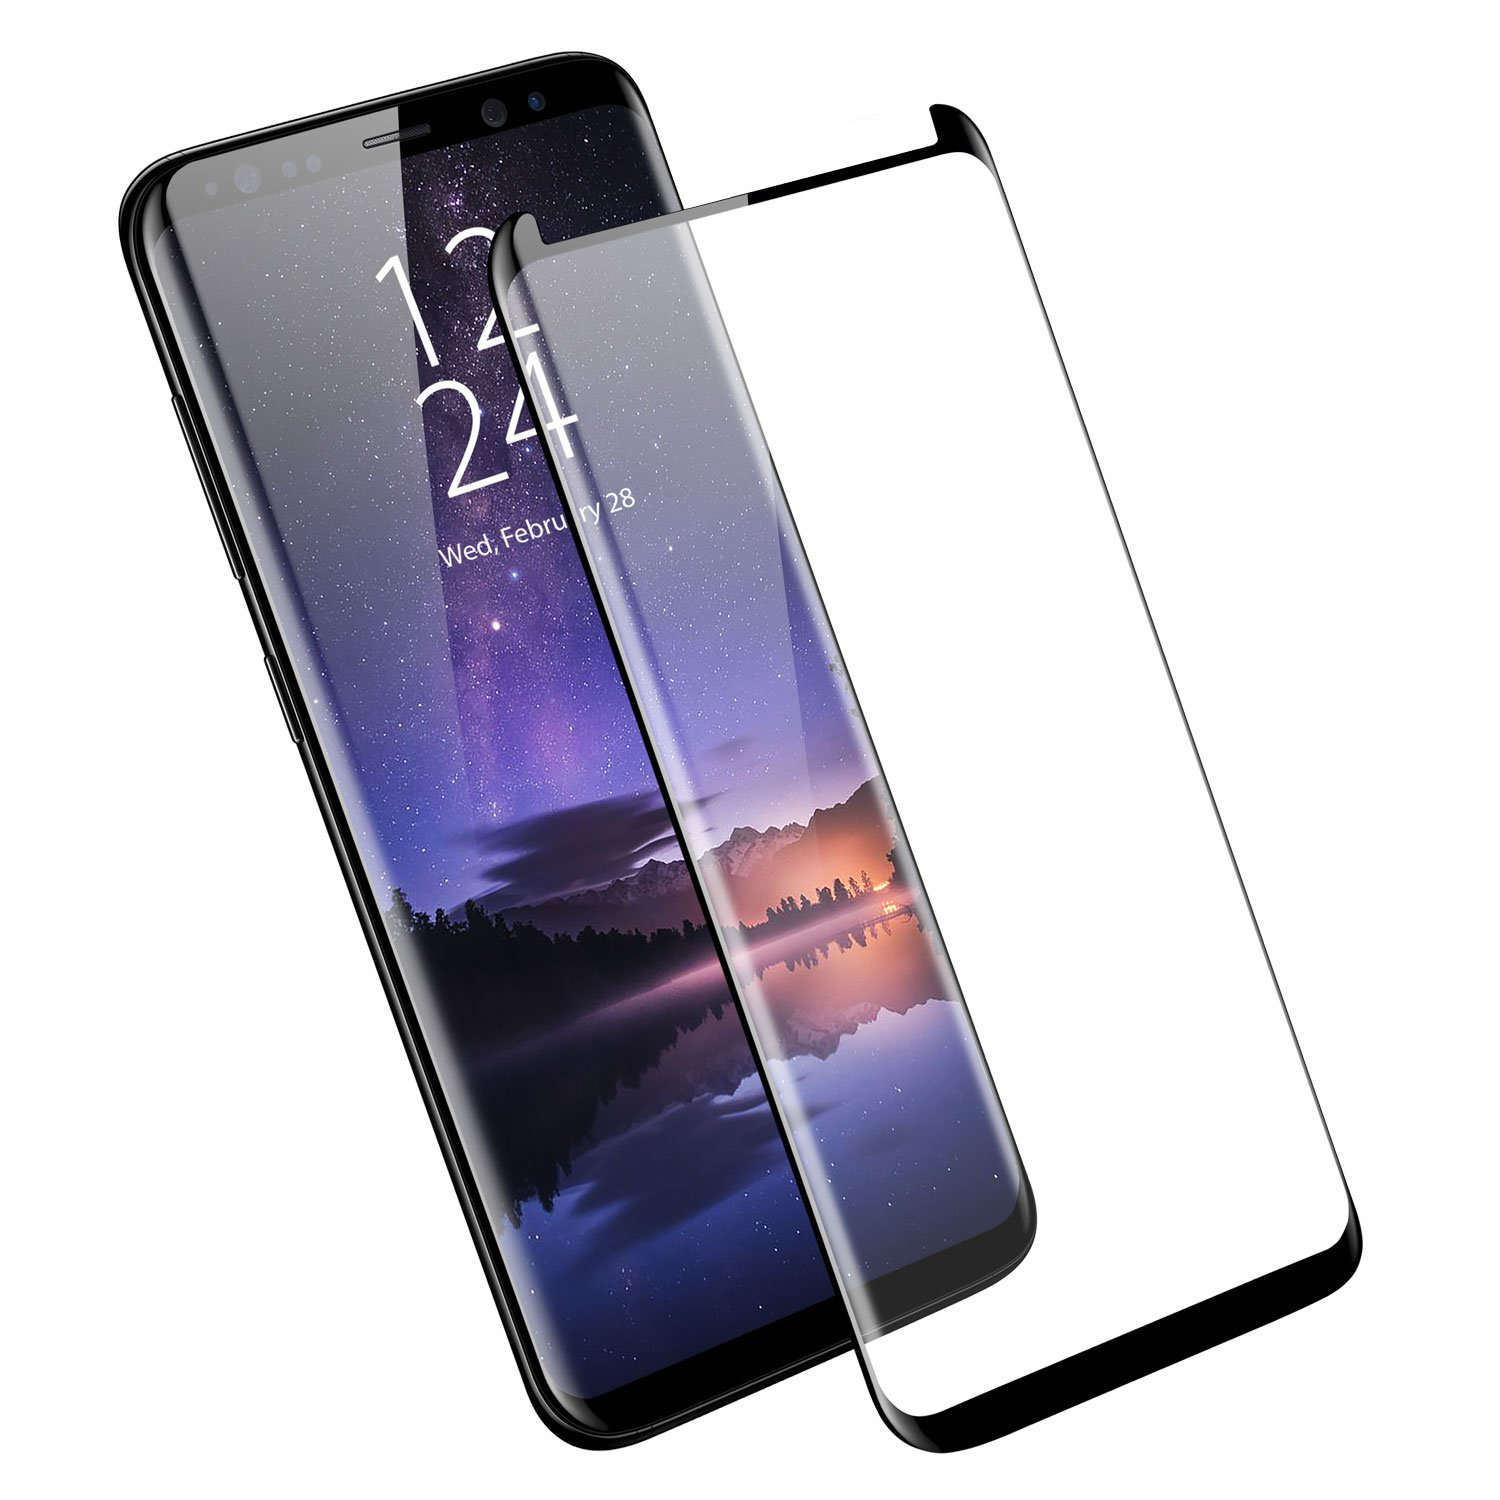 Cases For Note 9 S9 Plus S8 S7 Edge Others Anker Toughshell Galaxy Protective Case Spigen Hybrid 360 Front Black Protection With Included Tempered Glass Price 40000 Restocking Soon Colour